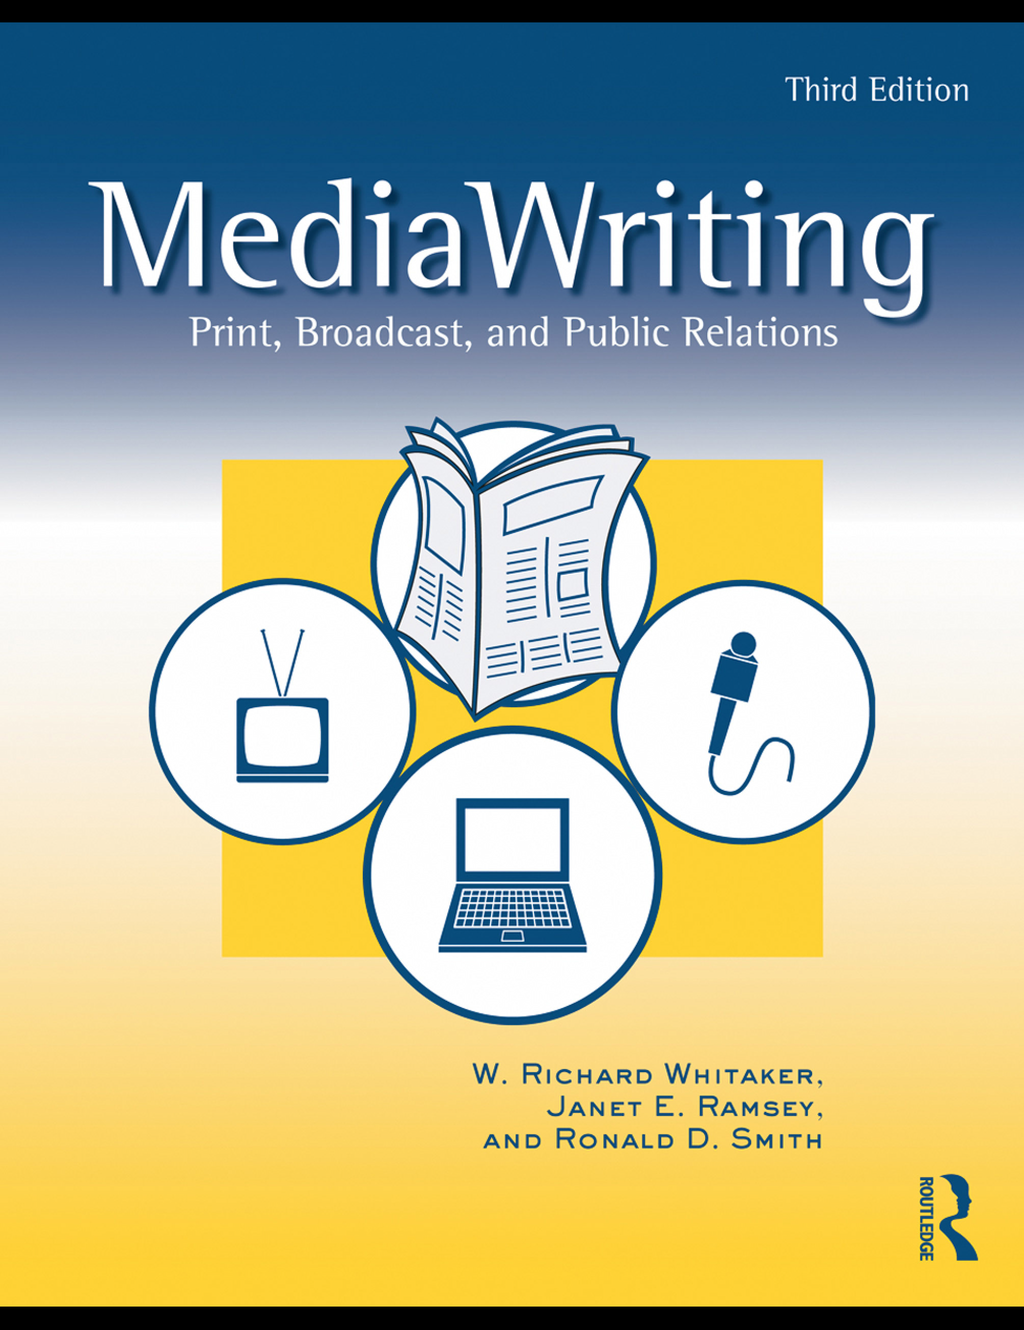 MediaWriting